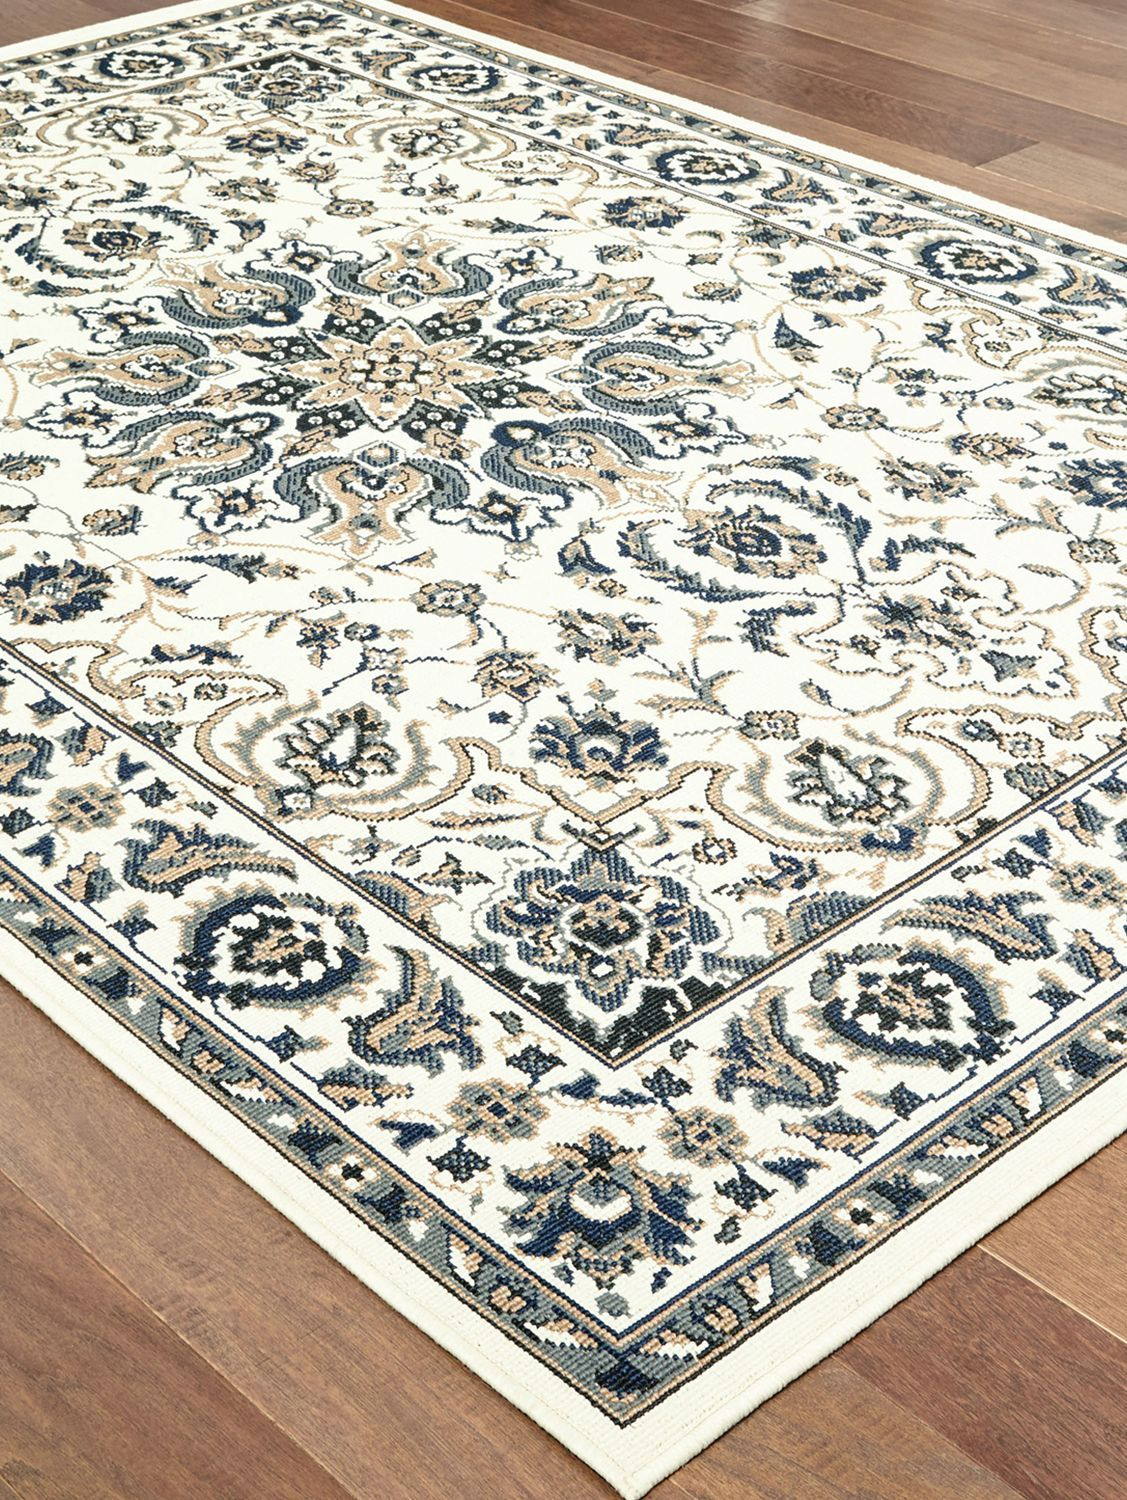 Pin By Liz Kelley On Home Decor Area Rugs Rugs Floral